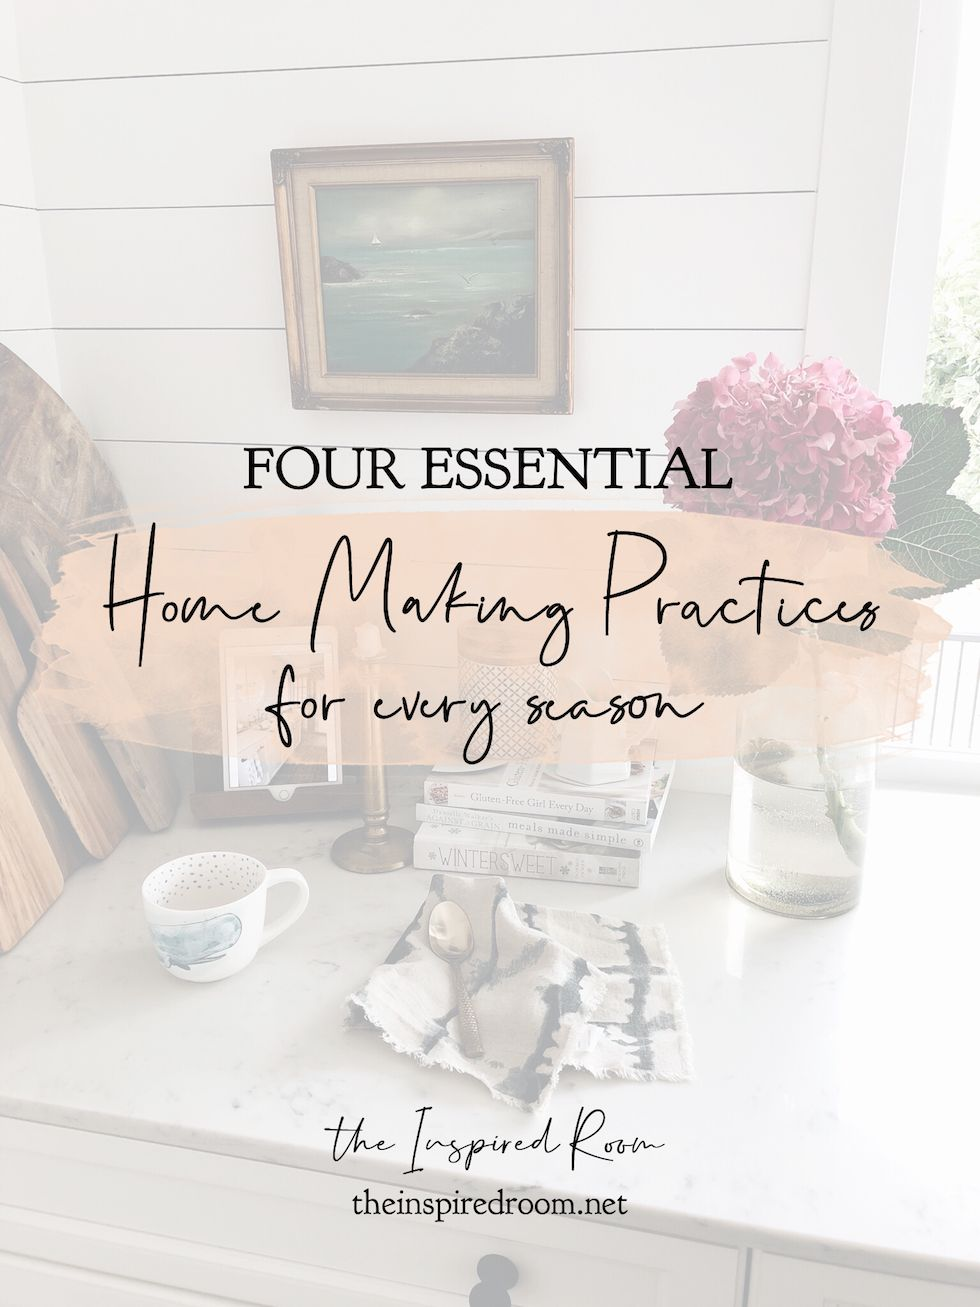 Four essential home-making practices for every season